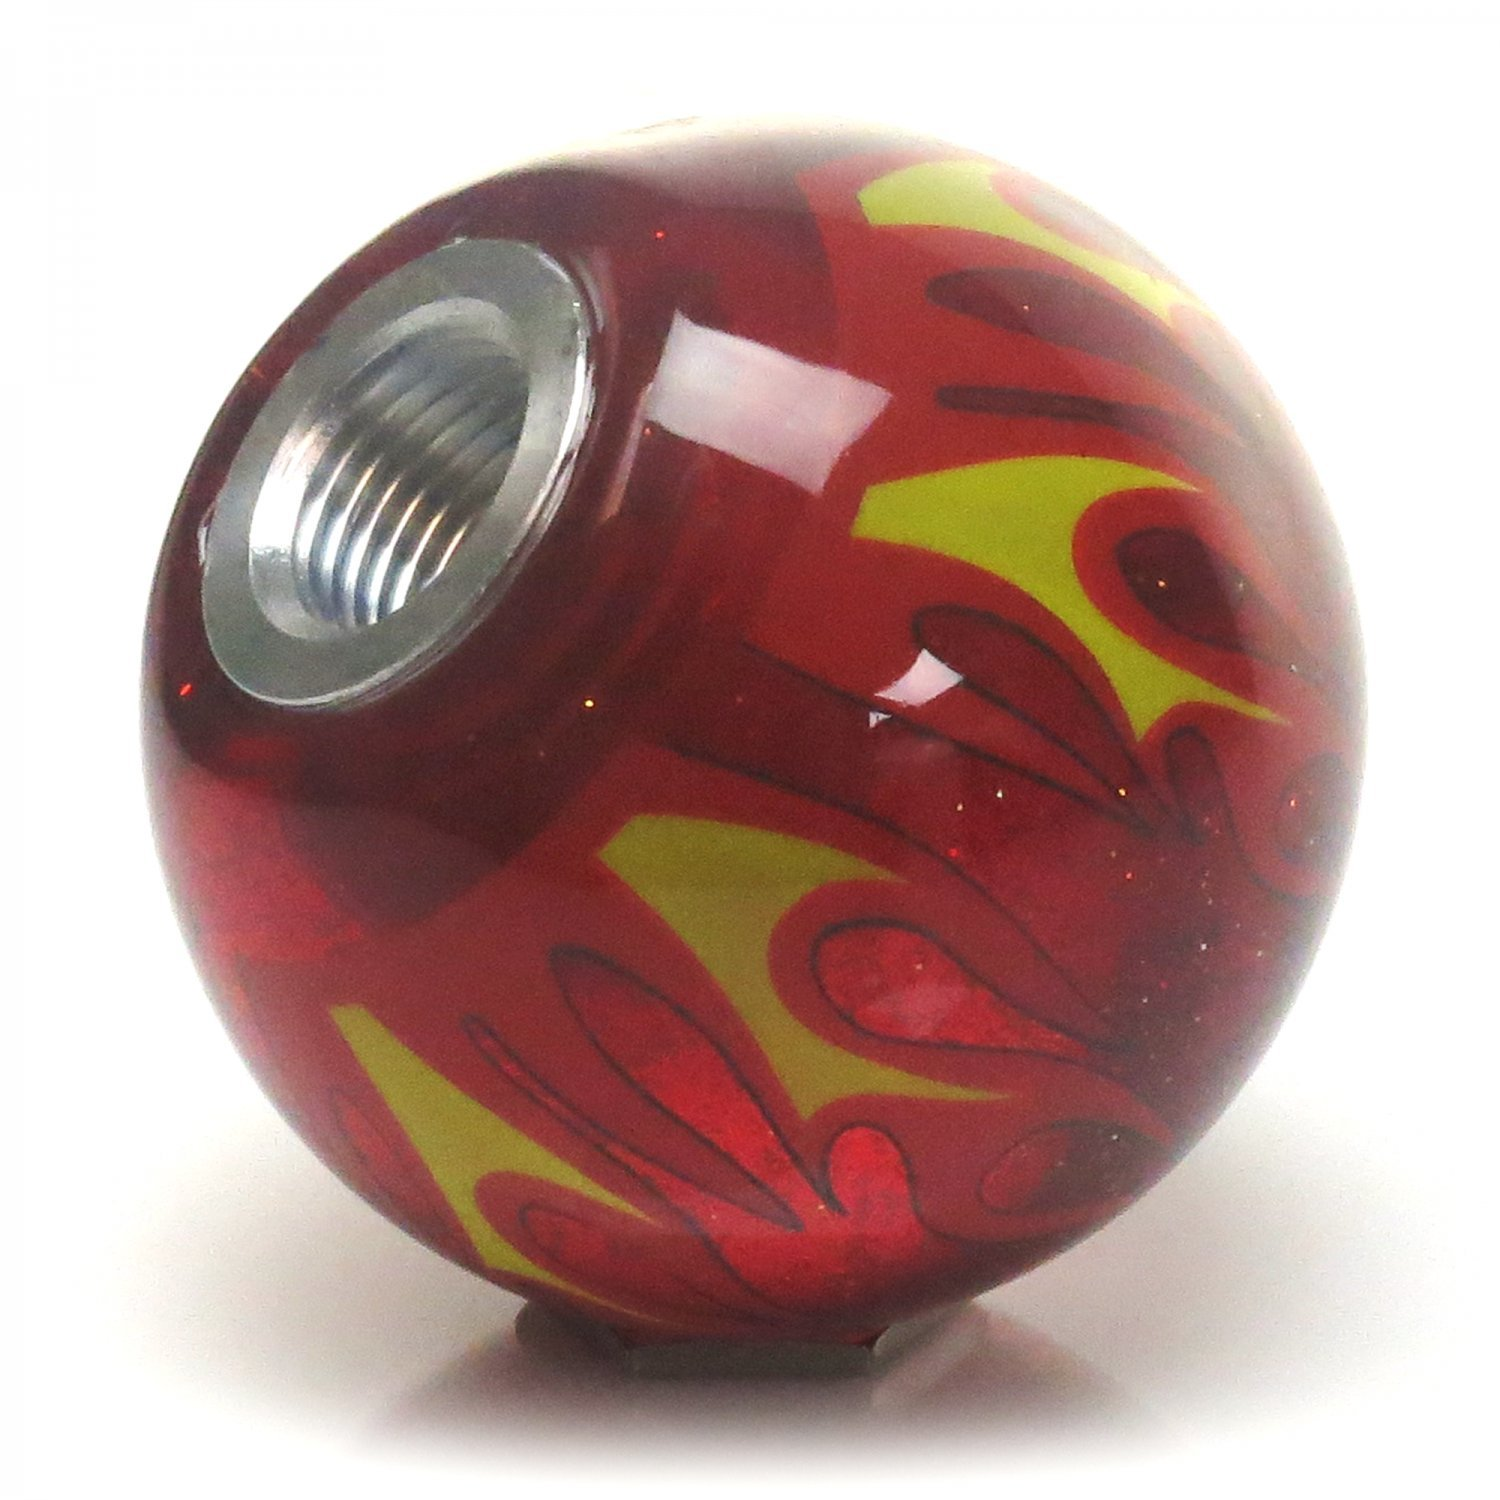 Blue Force or Fleet Command American Shifter 241231 Red Flame Metal Flake Shift Knob with M16 x 1.5 Insert